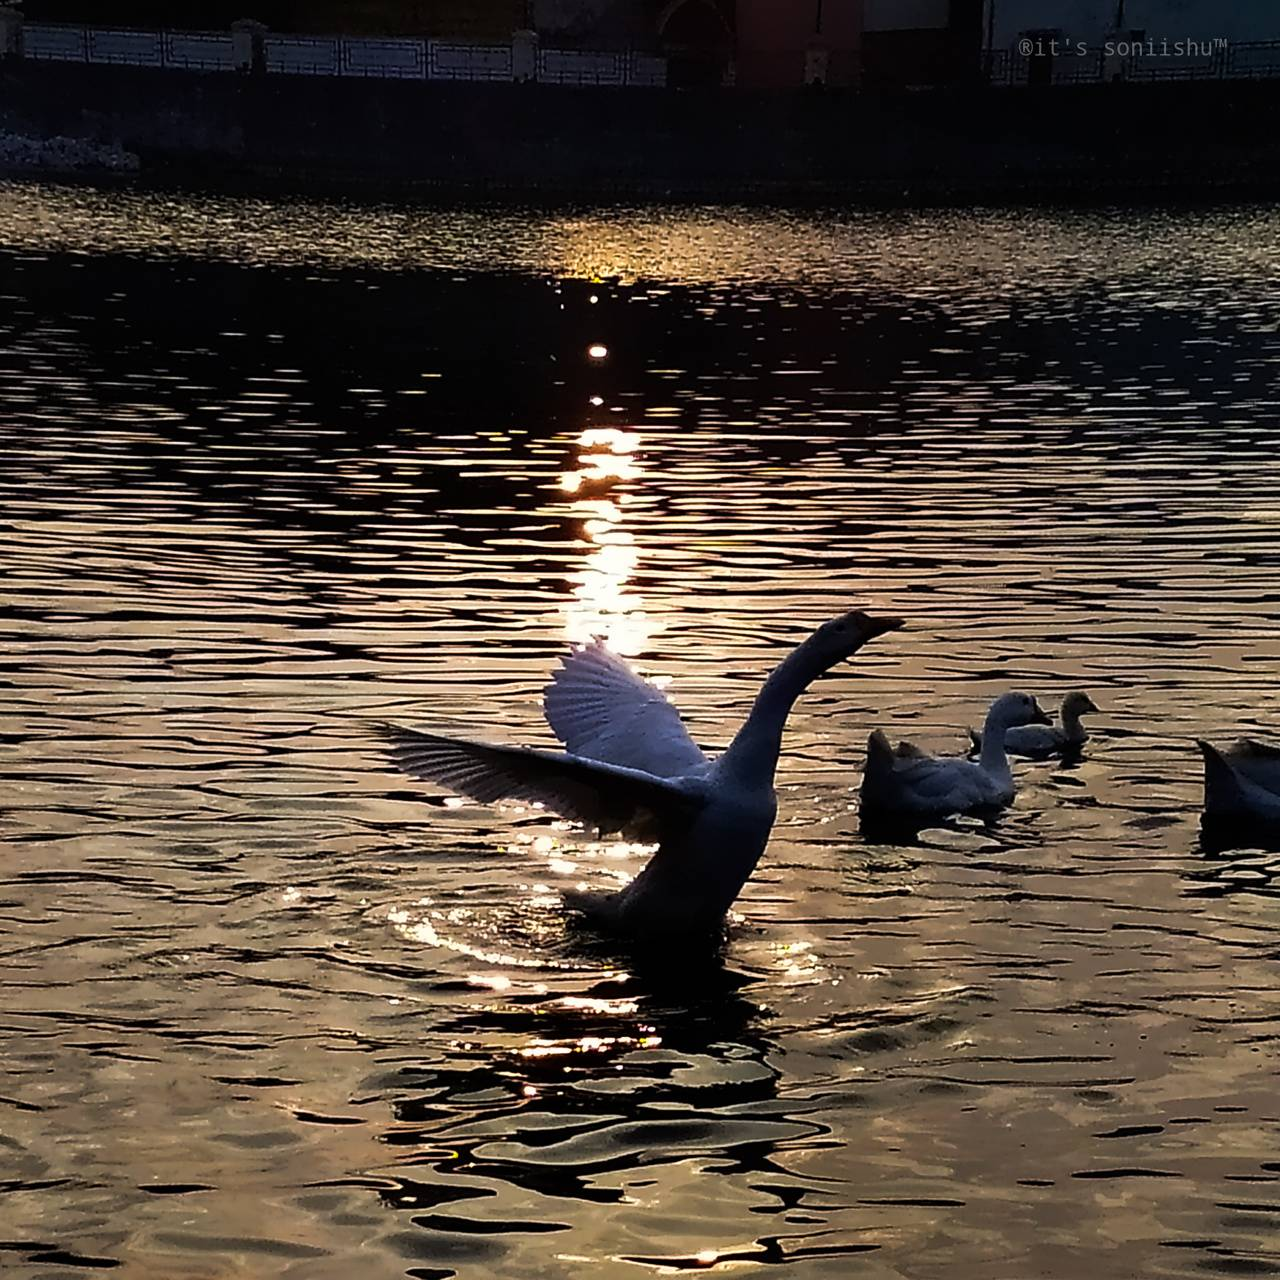 The swan is own pond